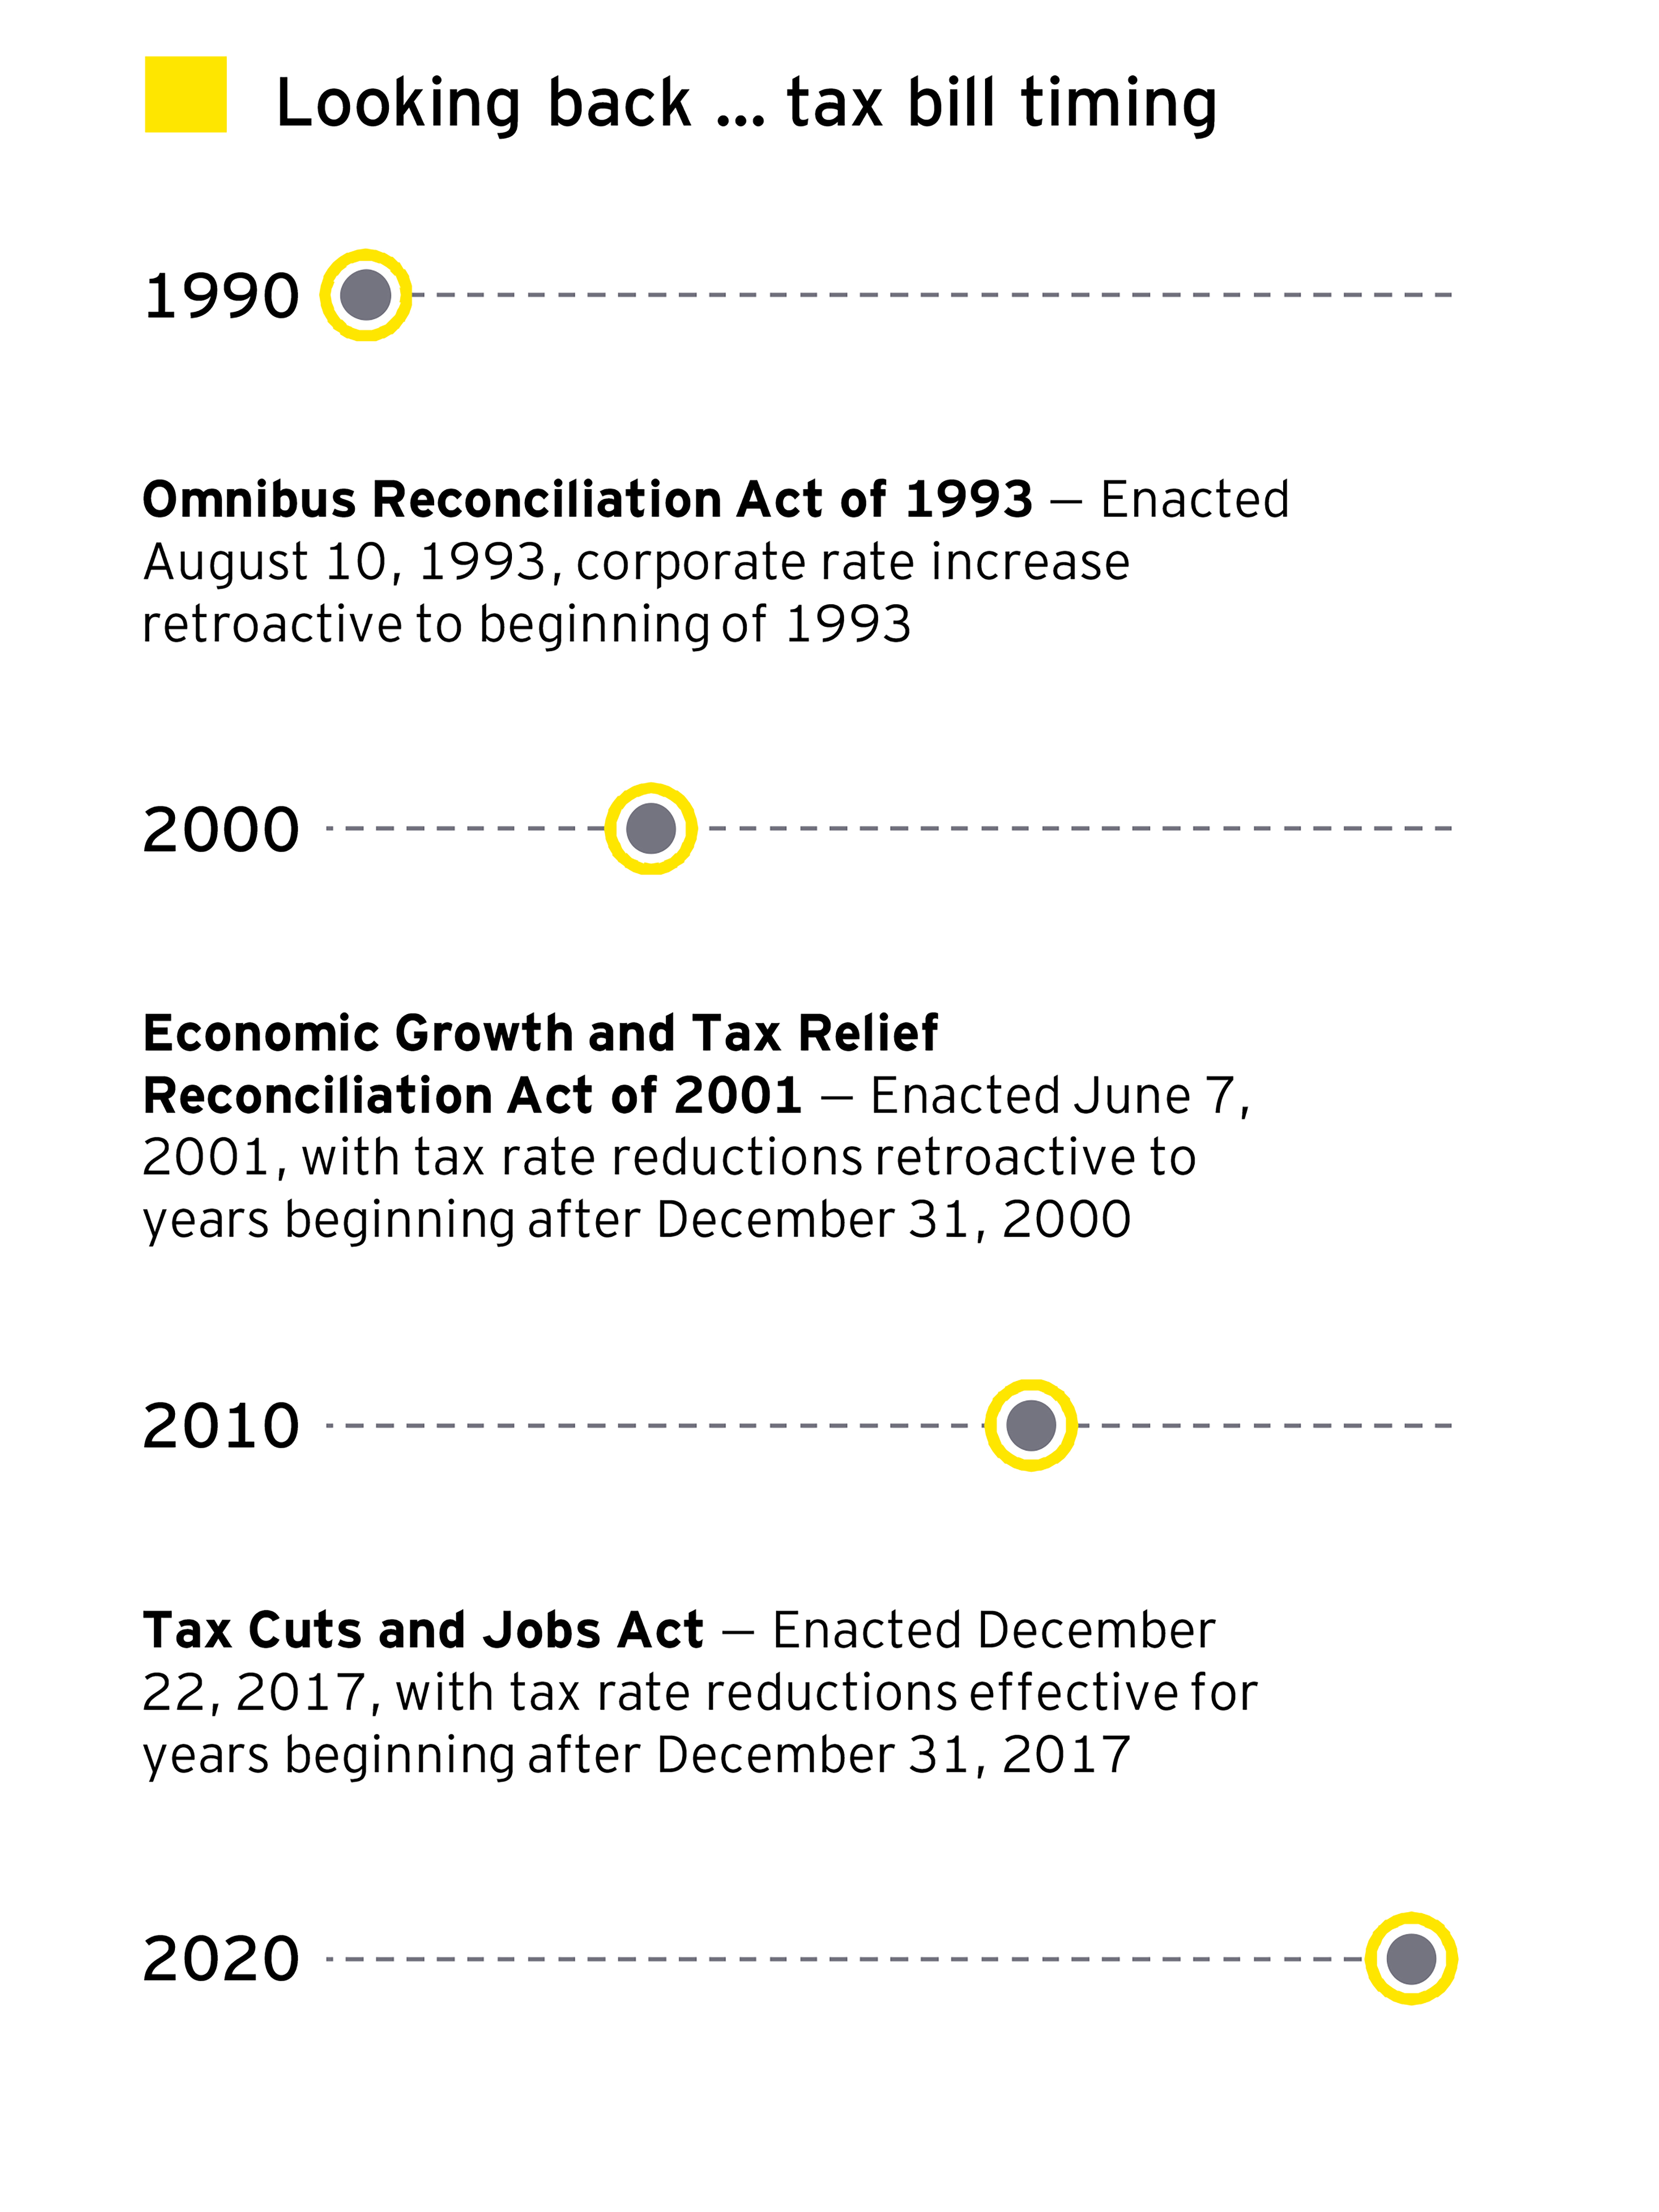 EY - Tax bill timing